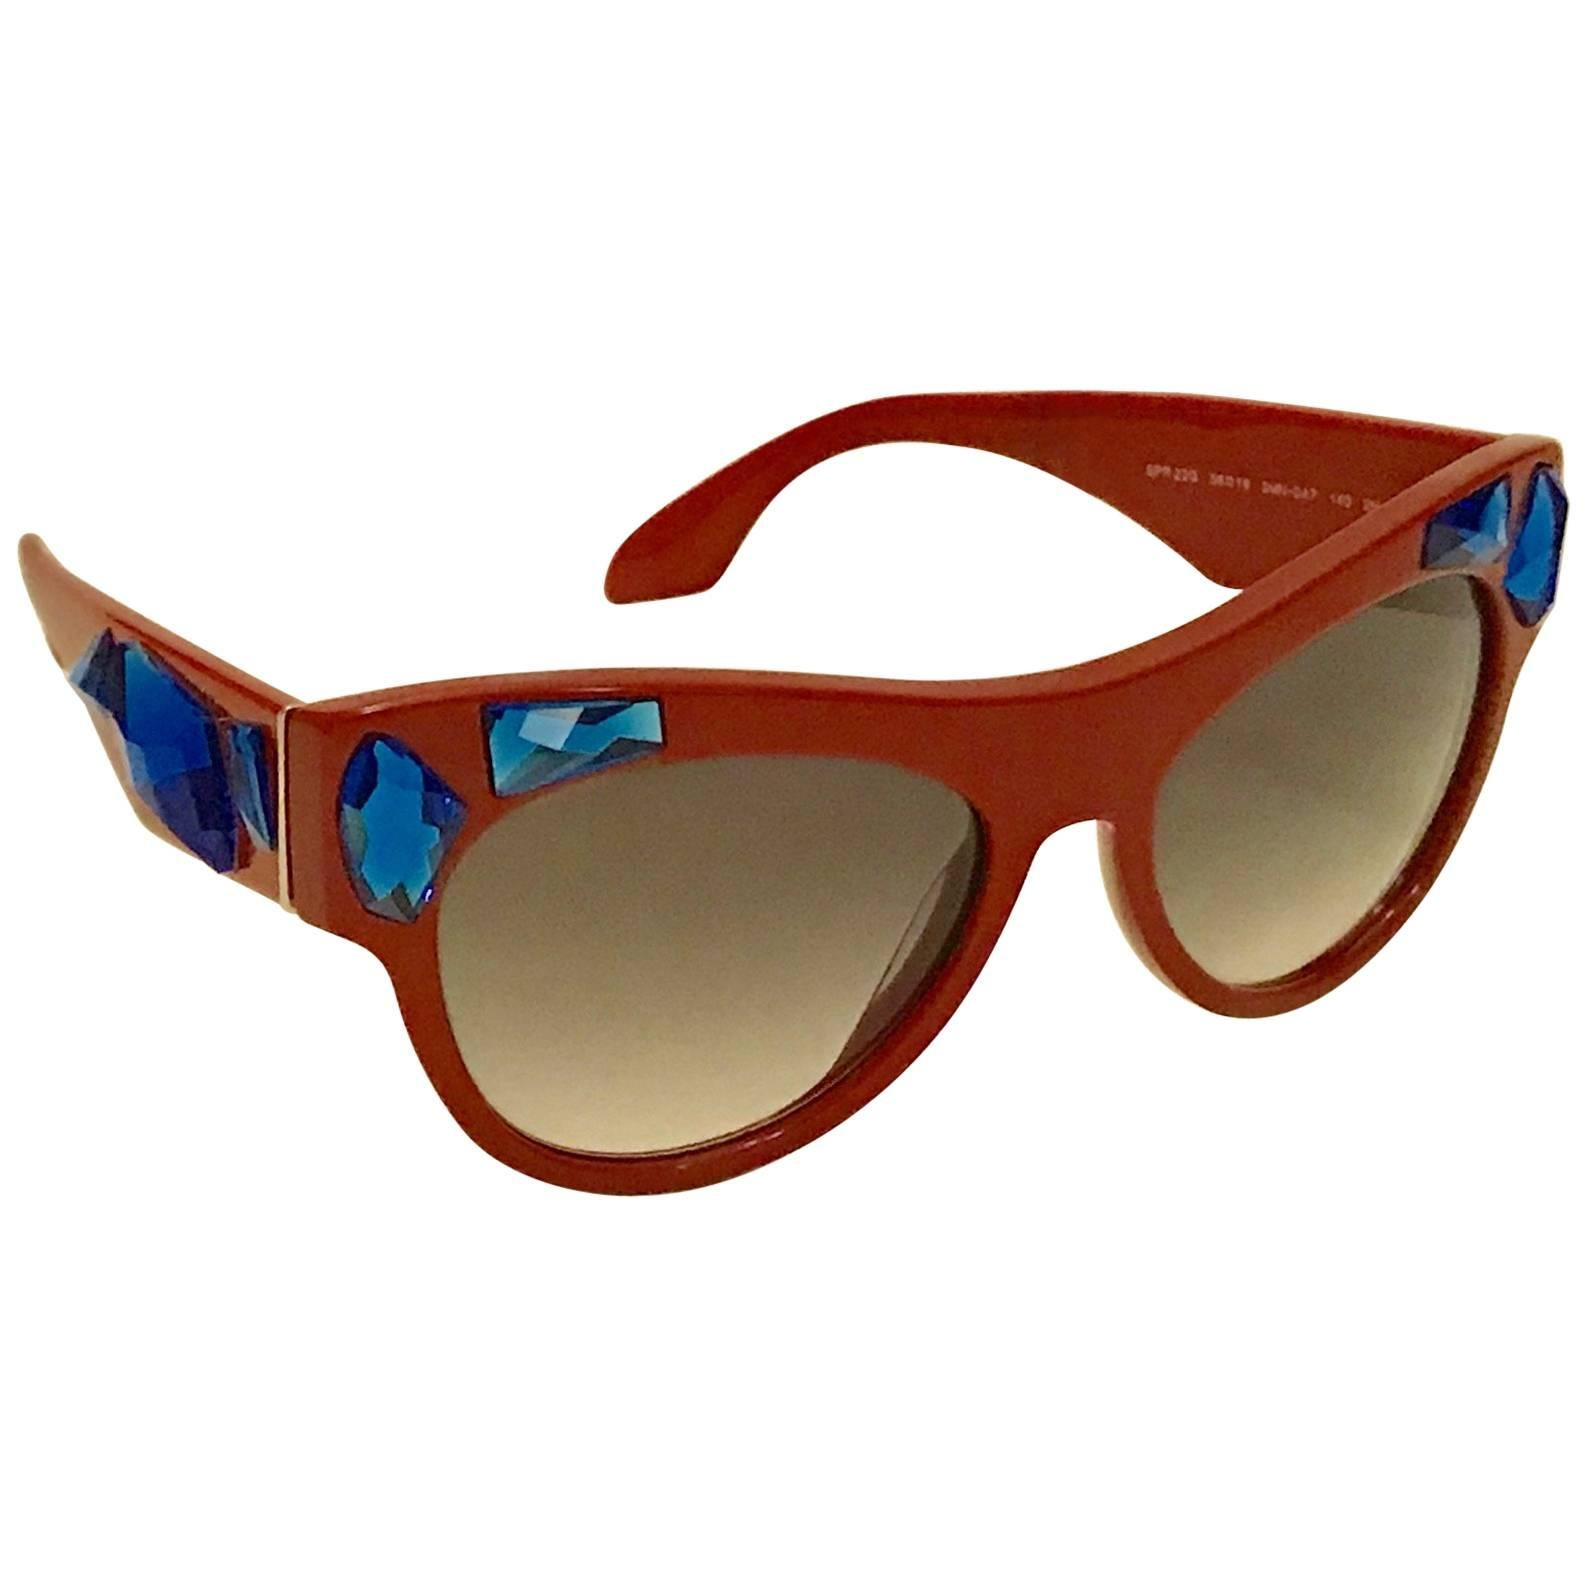 d42be181fe1b ... promo code new prada voice sunglasses red with blue crystal  embellishment with tags cf53f 35546